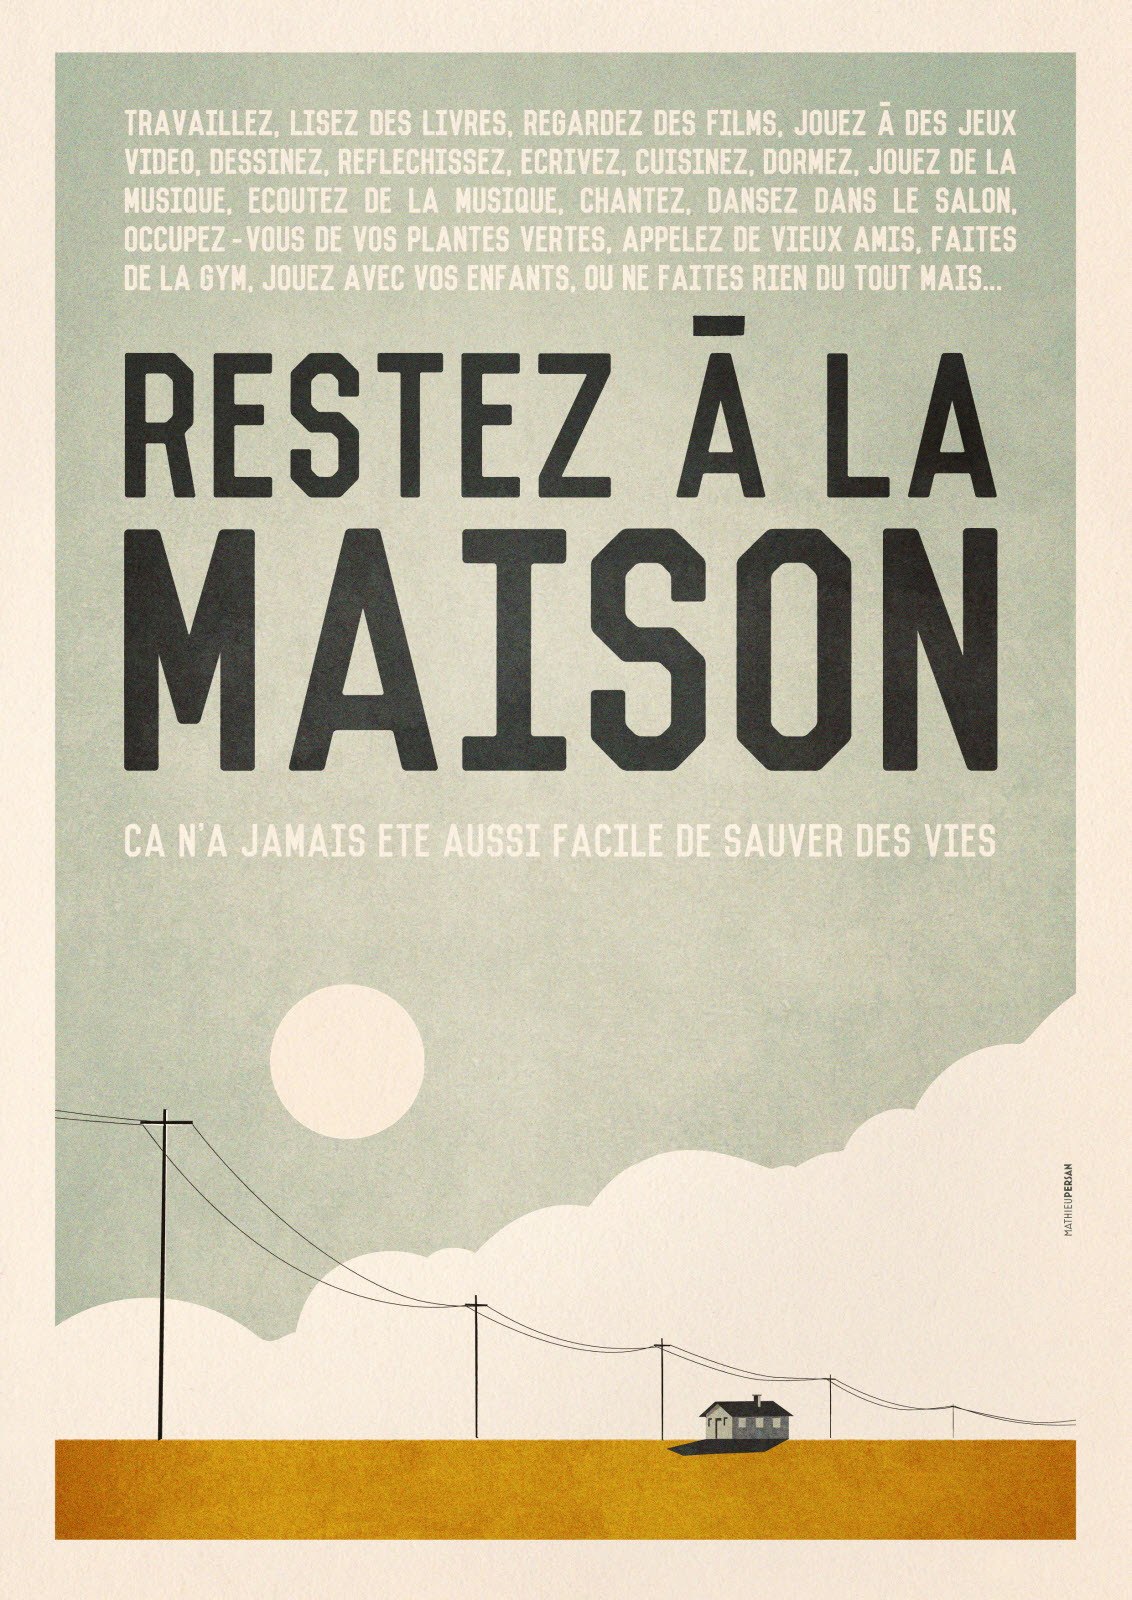 affiche confinement